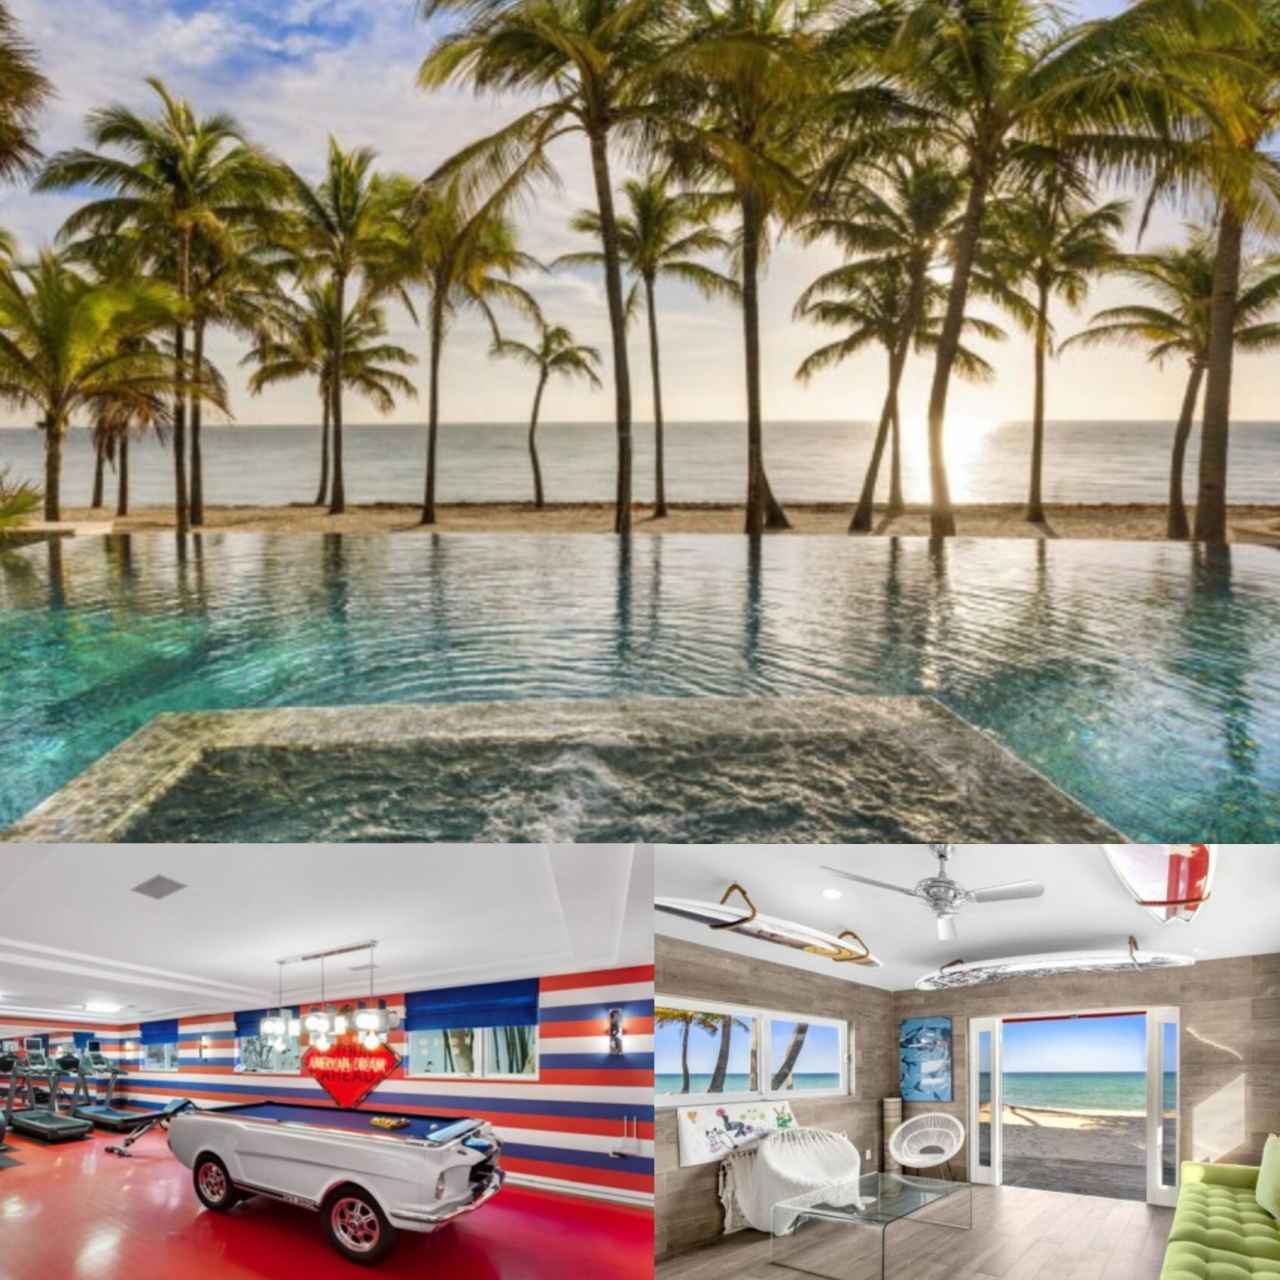 'Collage' with several photos of that house that just sold for 23 million.